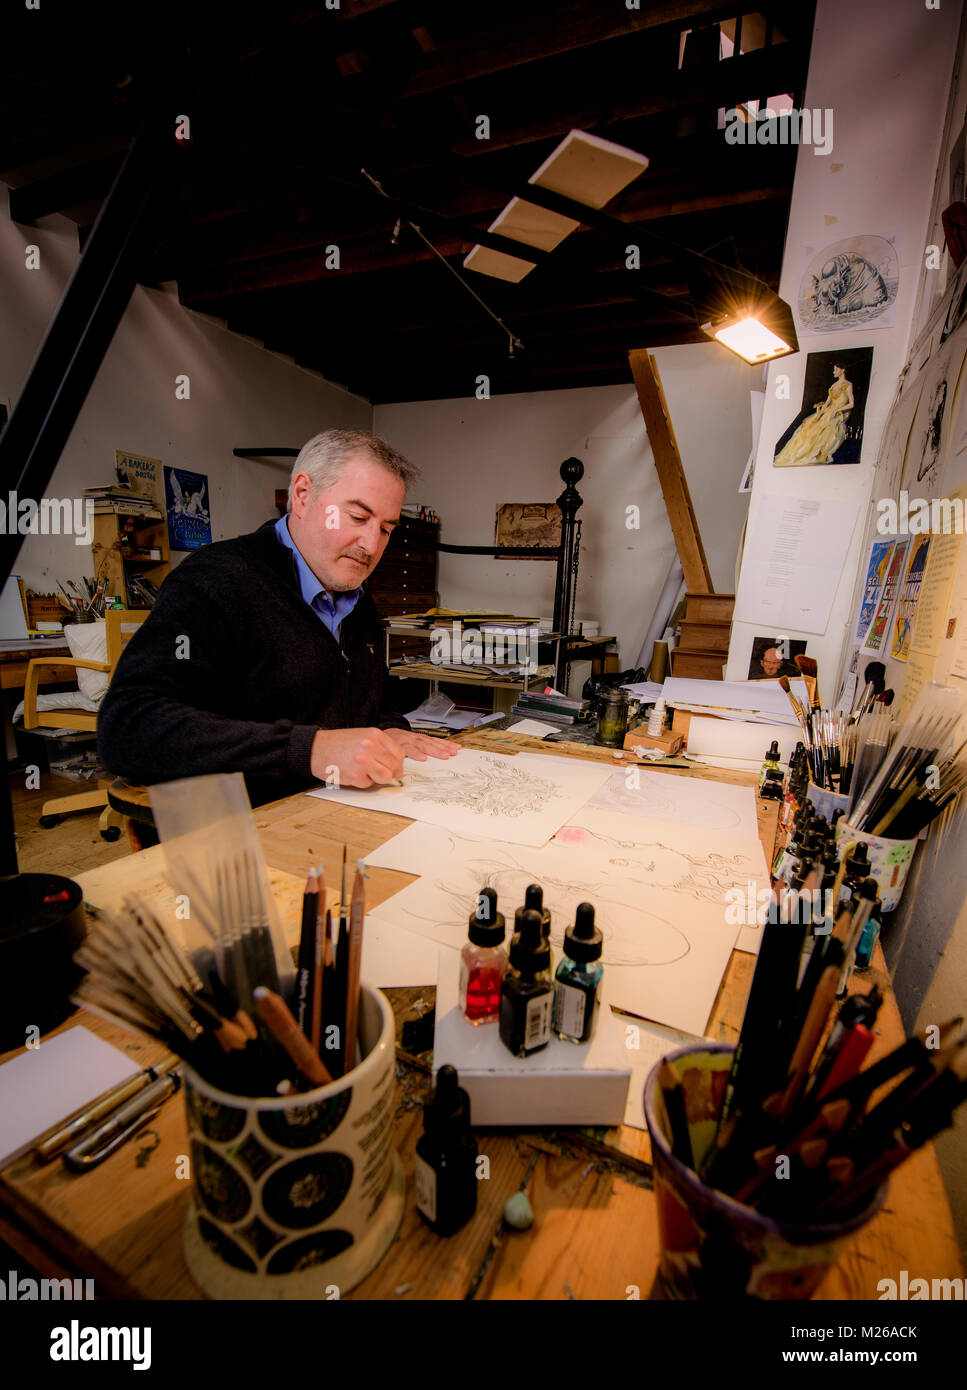 Illustrator and political cartoonist Chris Riddell at his Brighton studio in East Sussex UK. - Stock Image